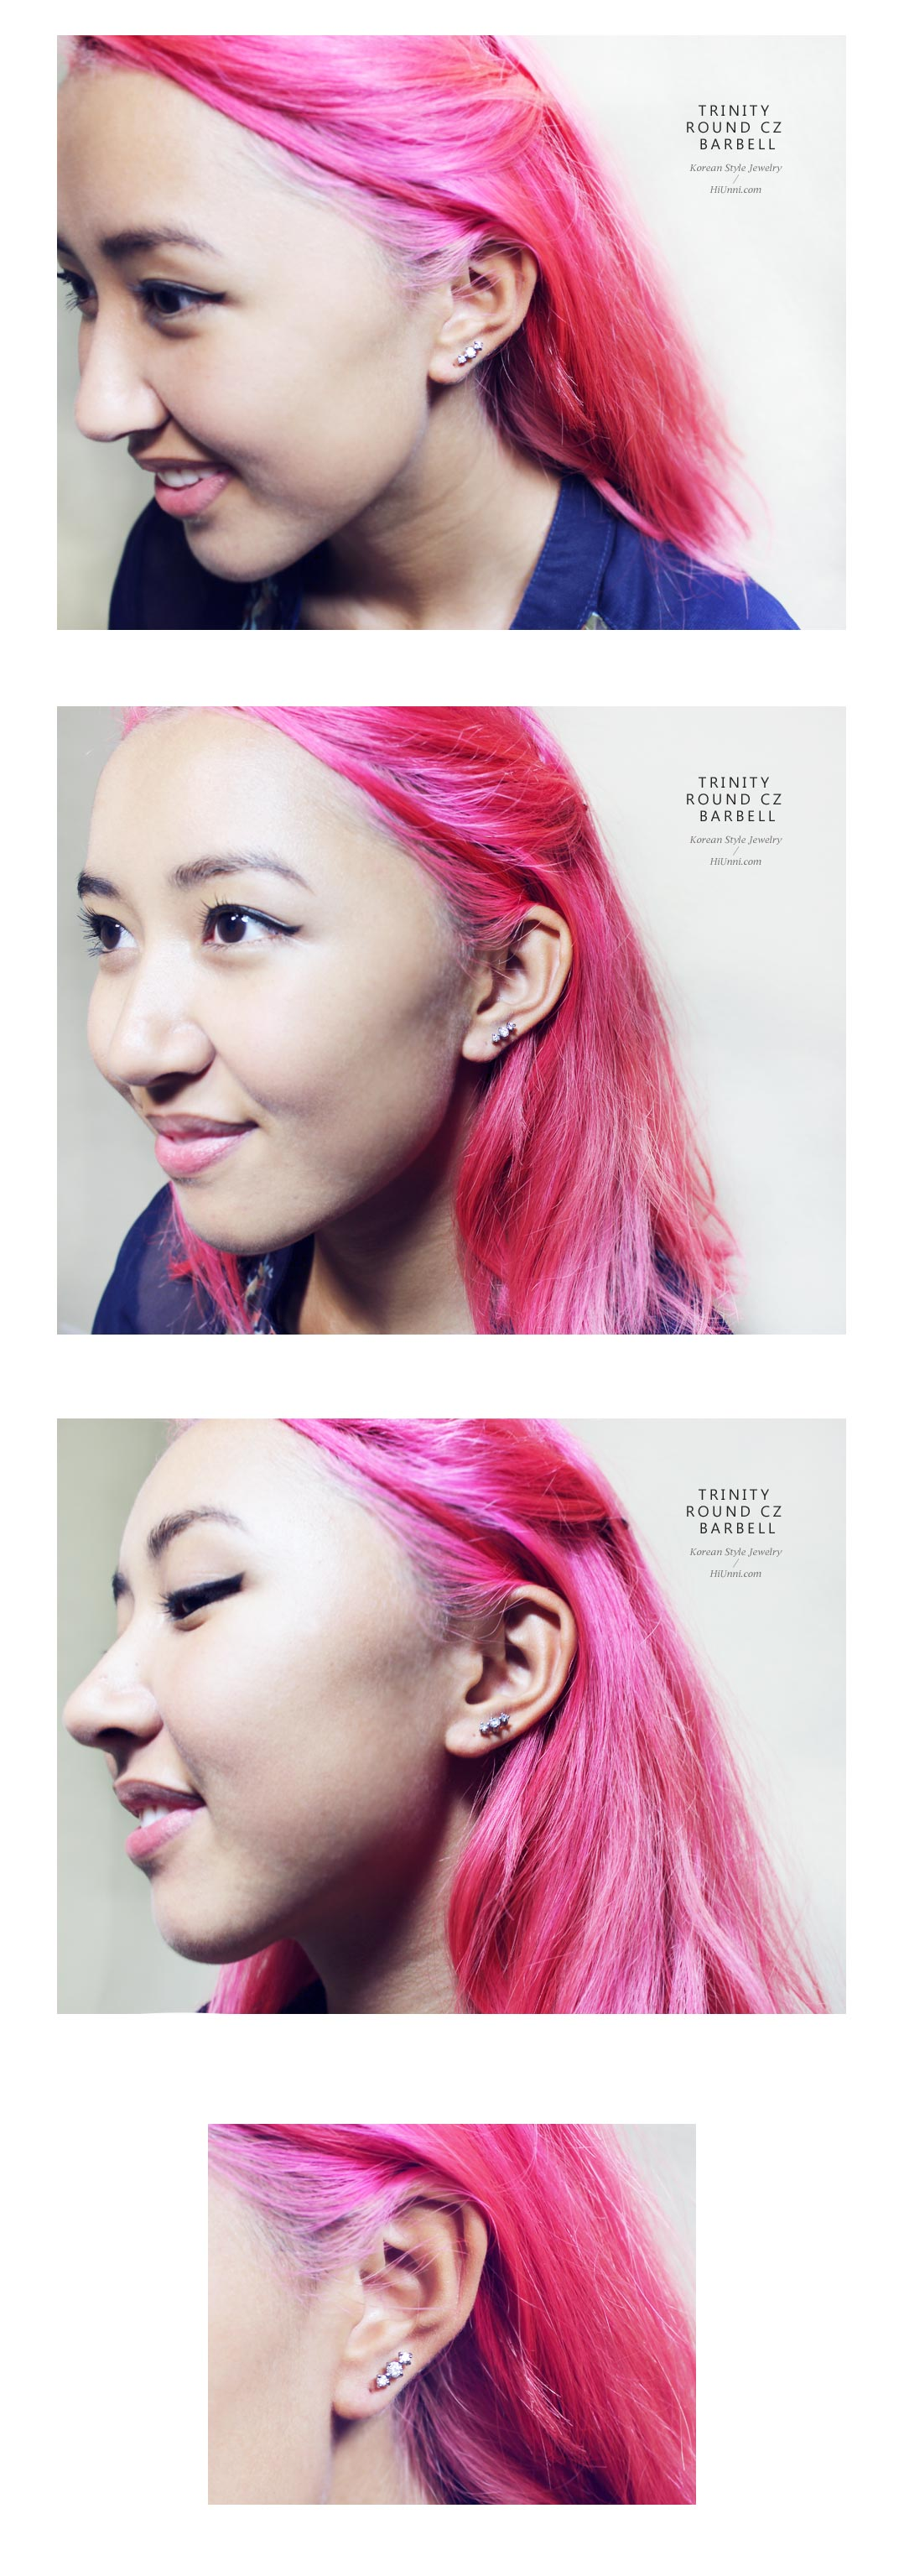 ear_studs_piercing_Cartilage_16g_316l_Stainless_Steel_earring_korean_asian_style_barbell_gem_cubic_zirconia_cz_triple_5